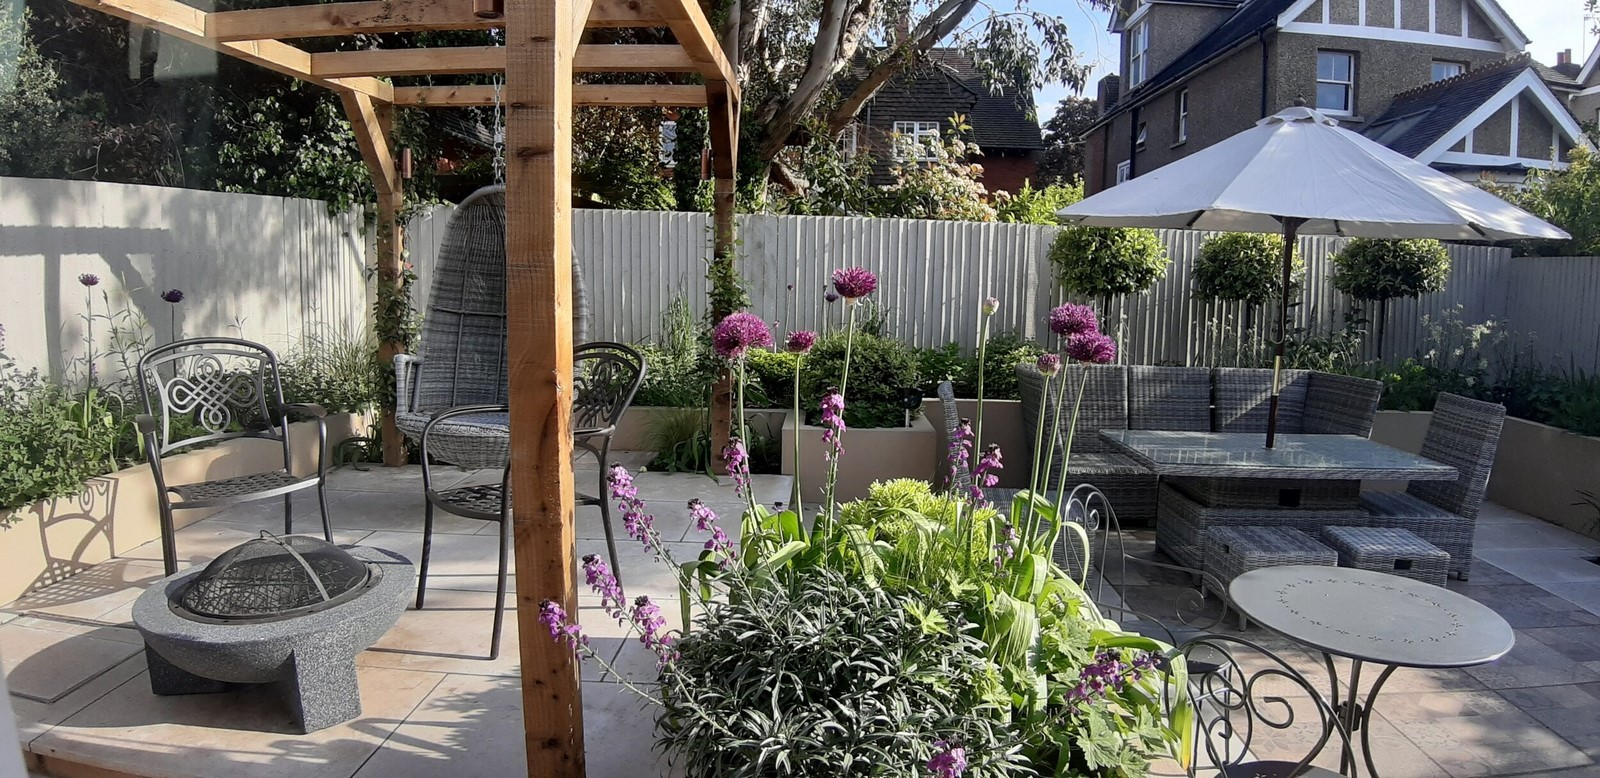 50 Ideas and Tips for Landscaping - Sheet37